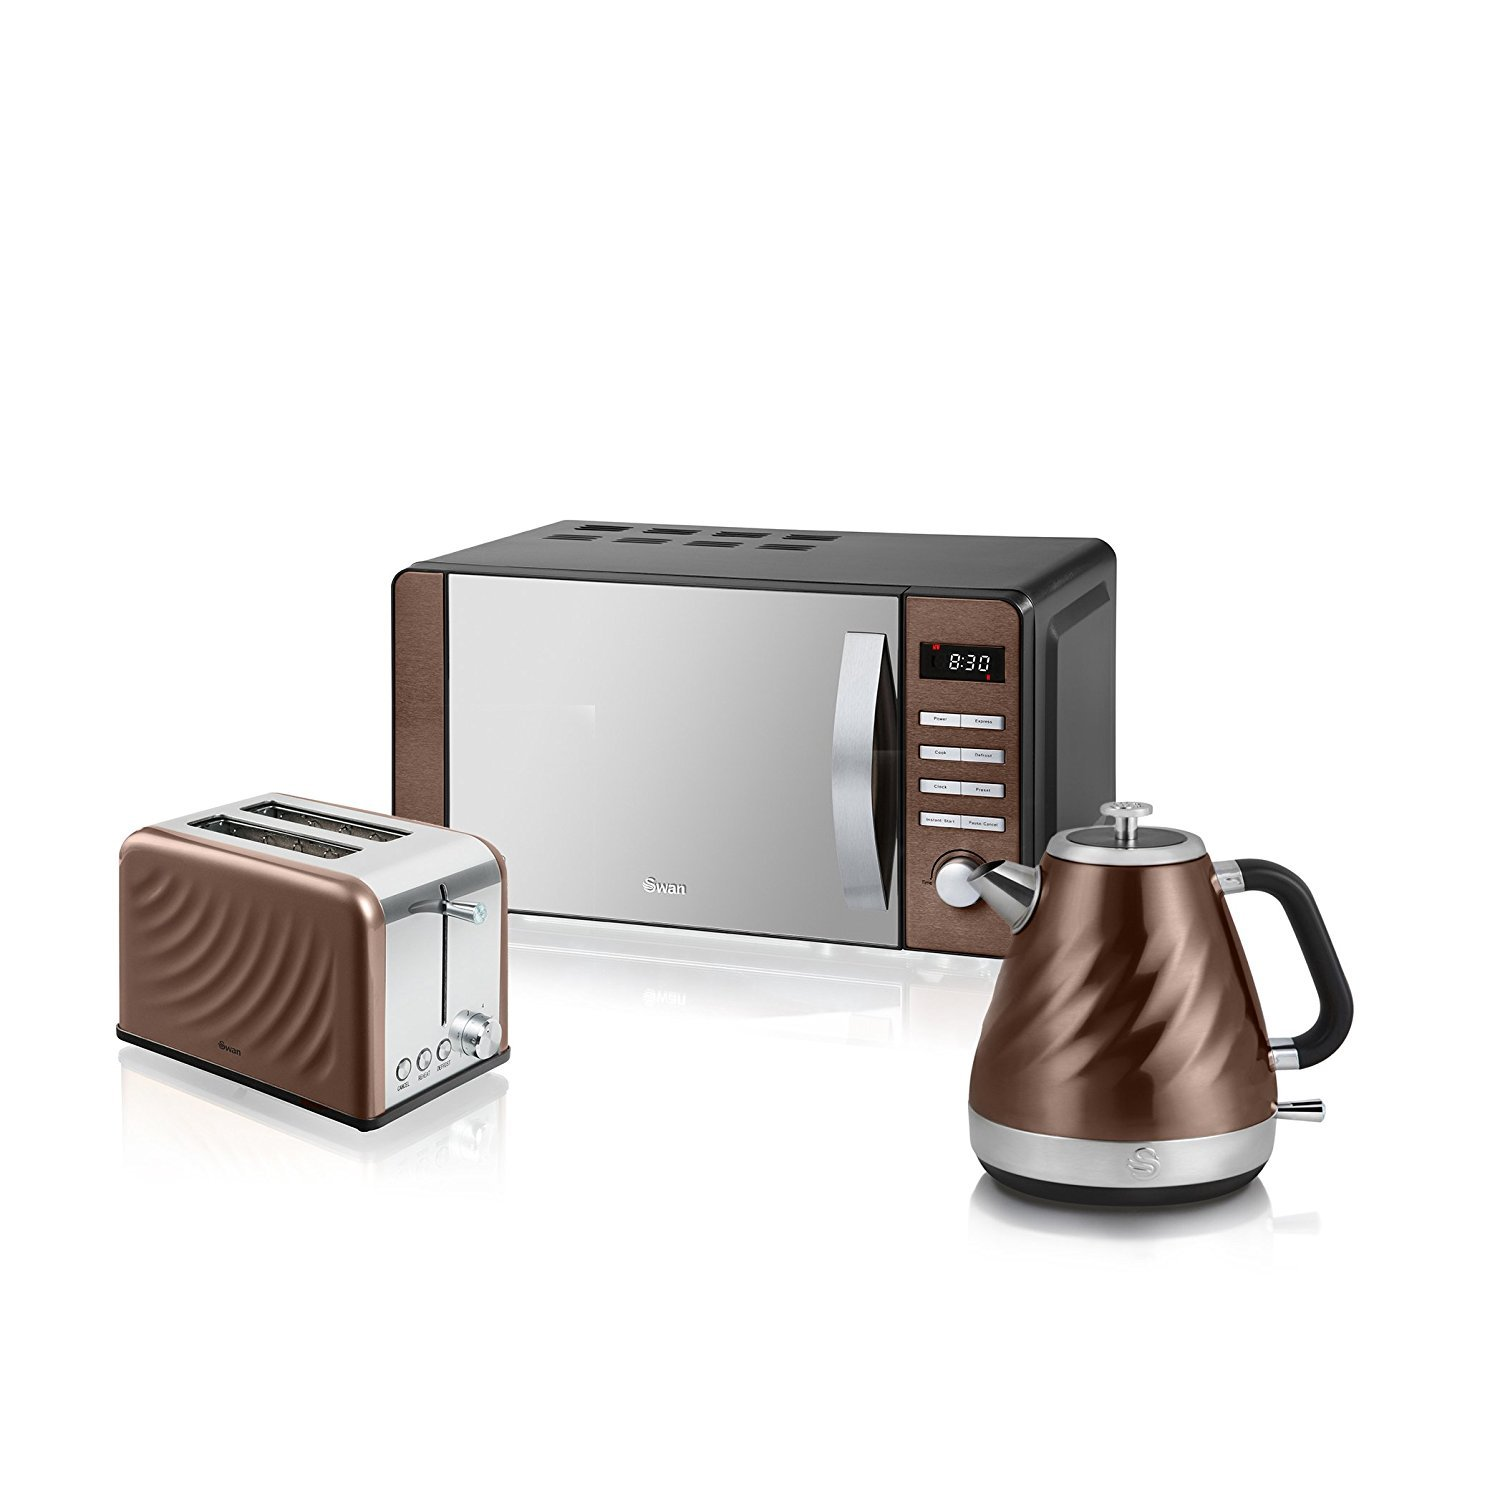 Copper Kettle and Toaster: Amazon.co.uk